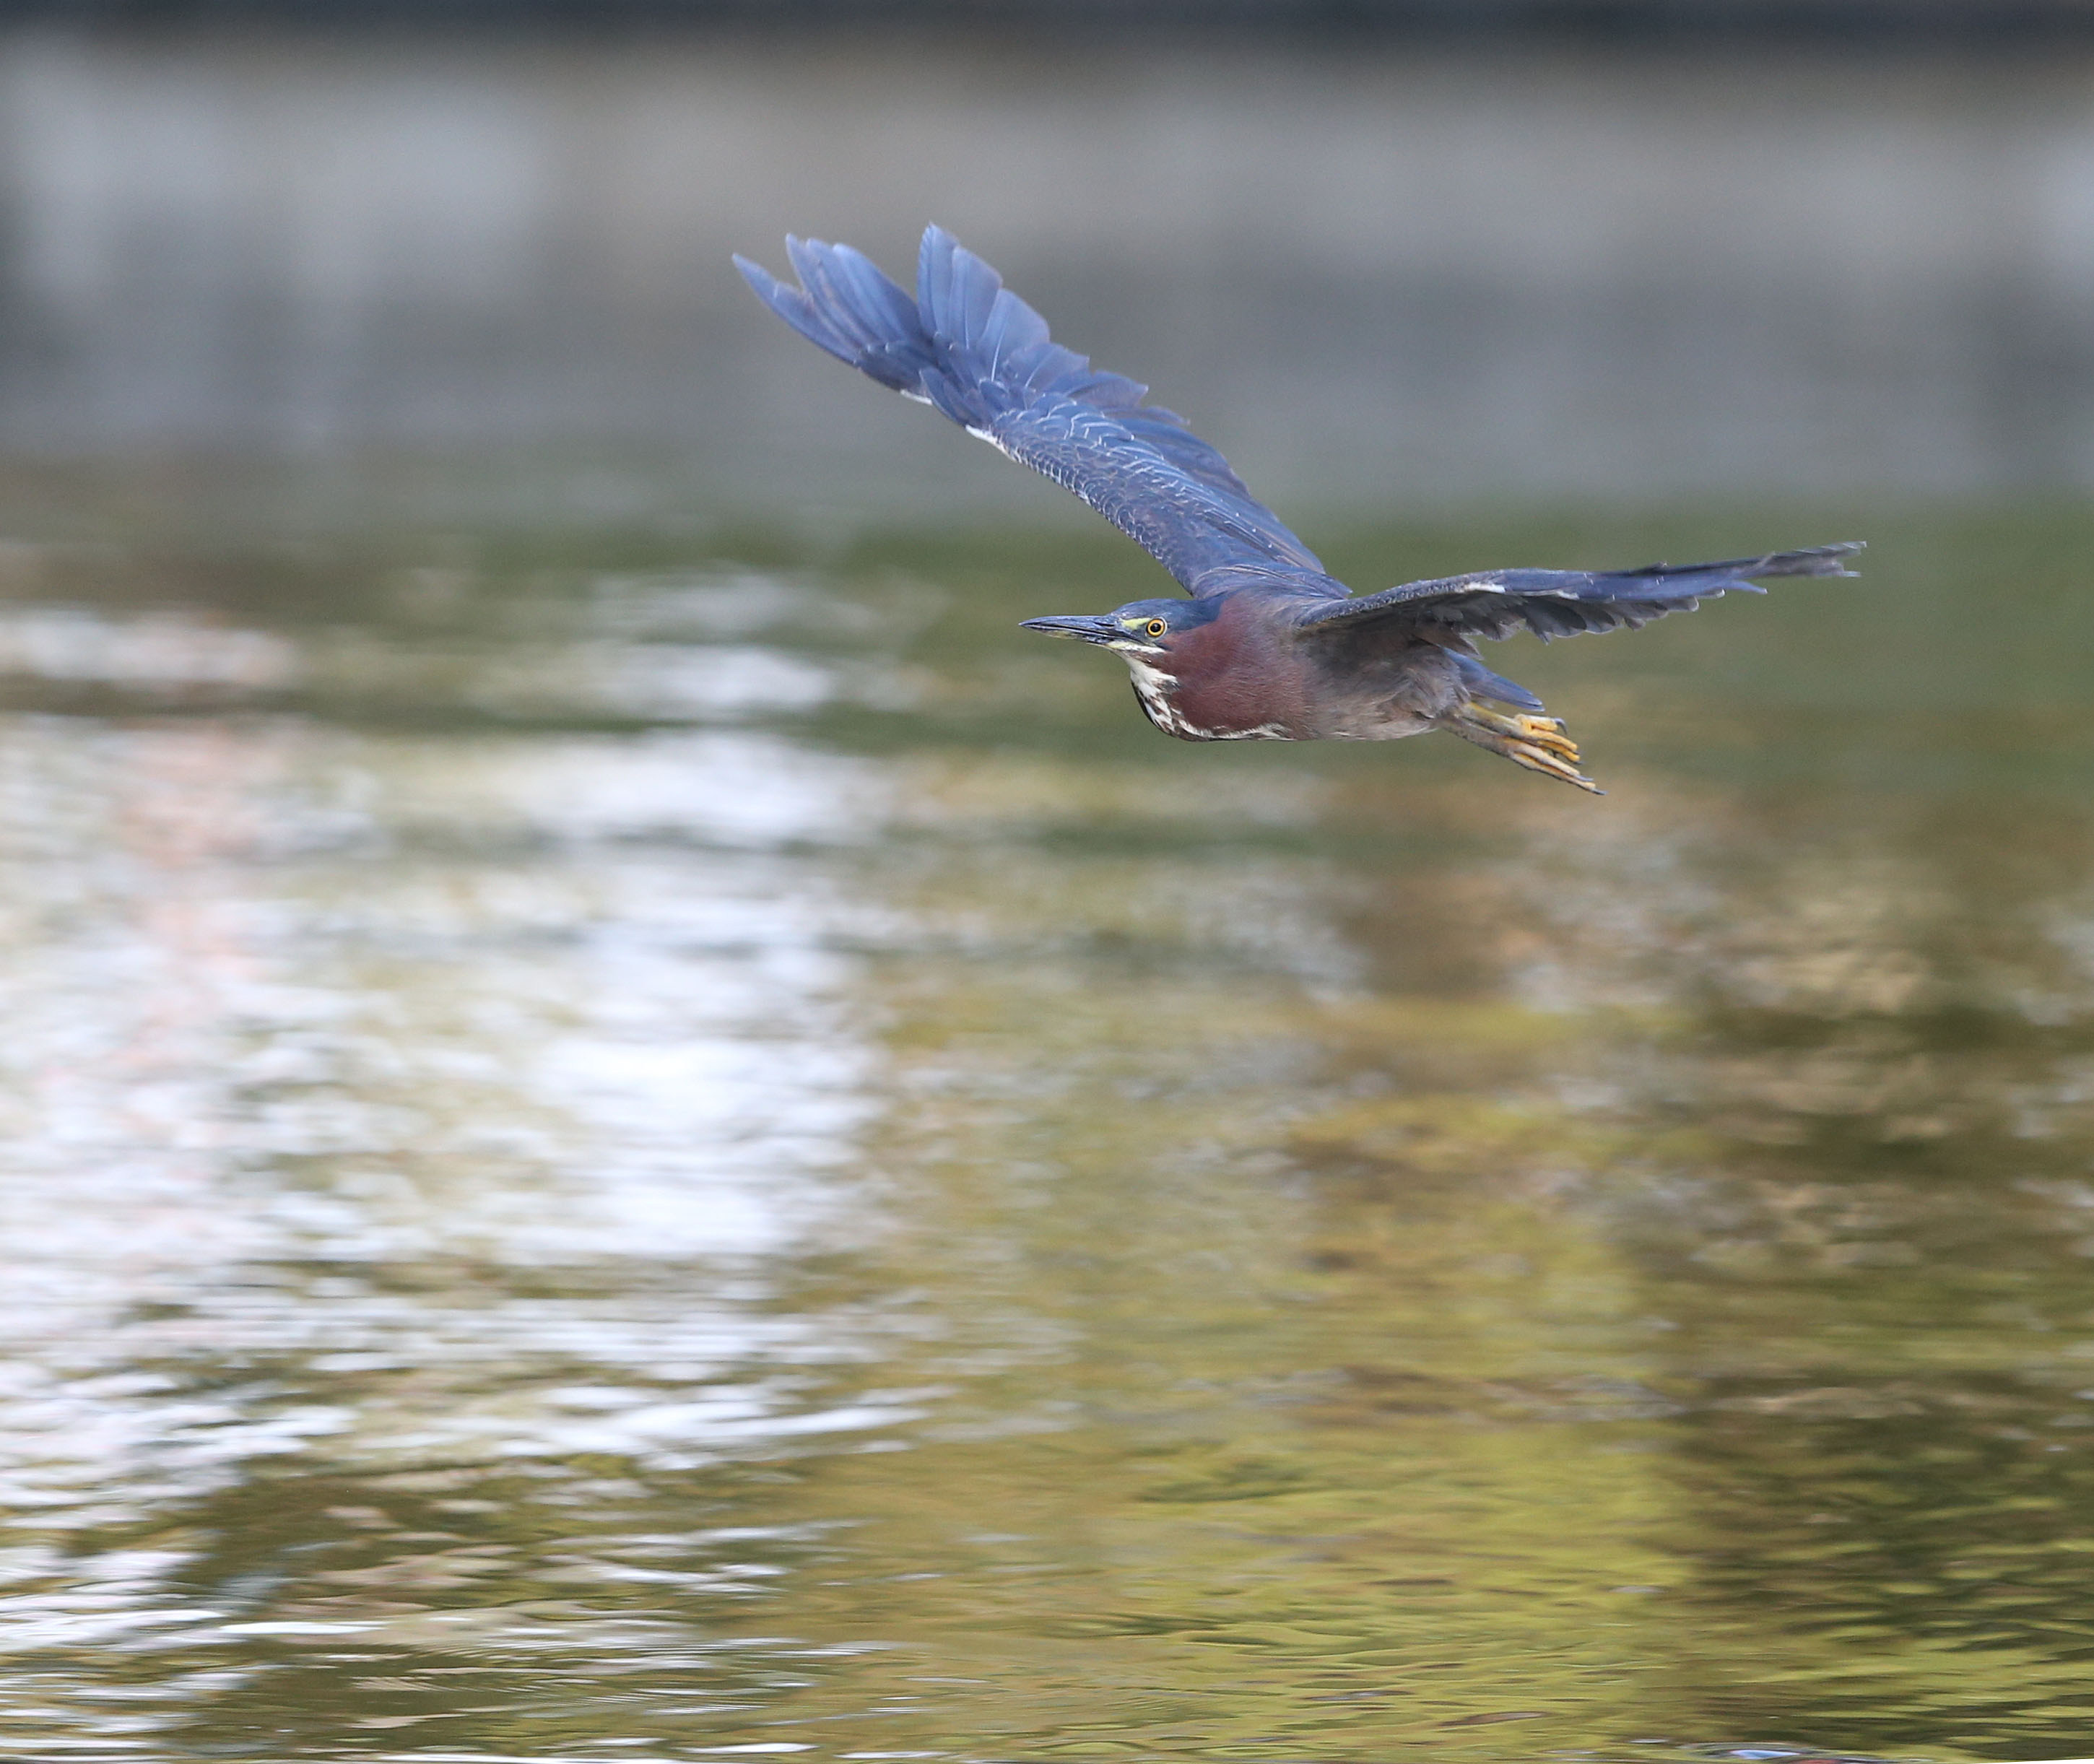 Adult Green Heron in flight